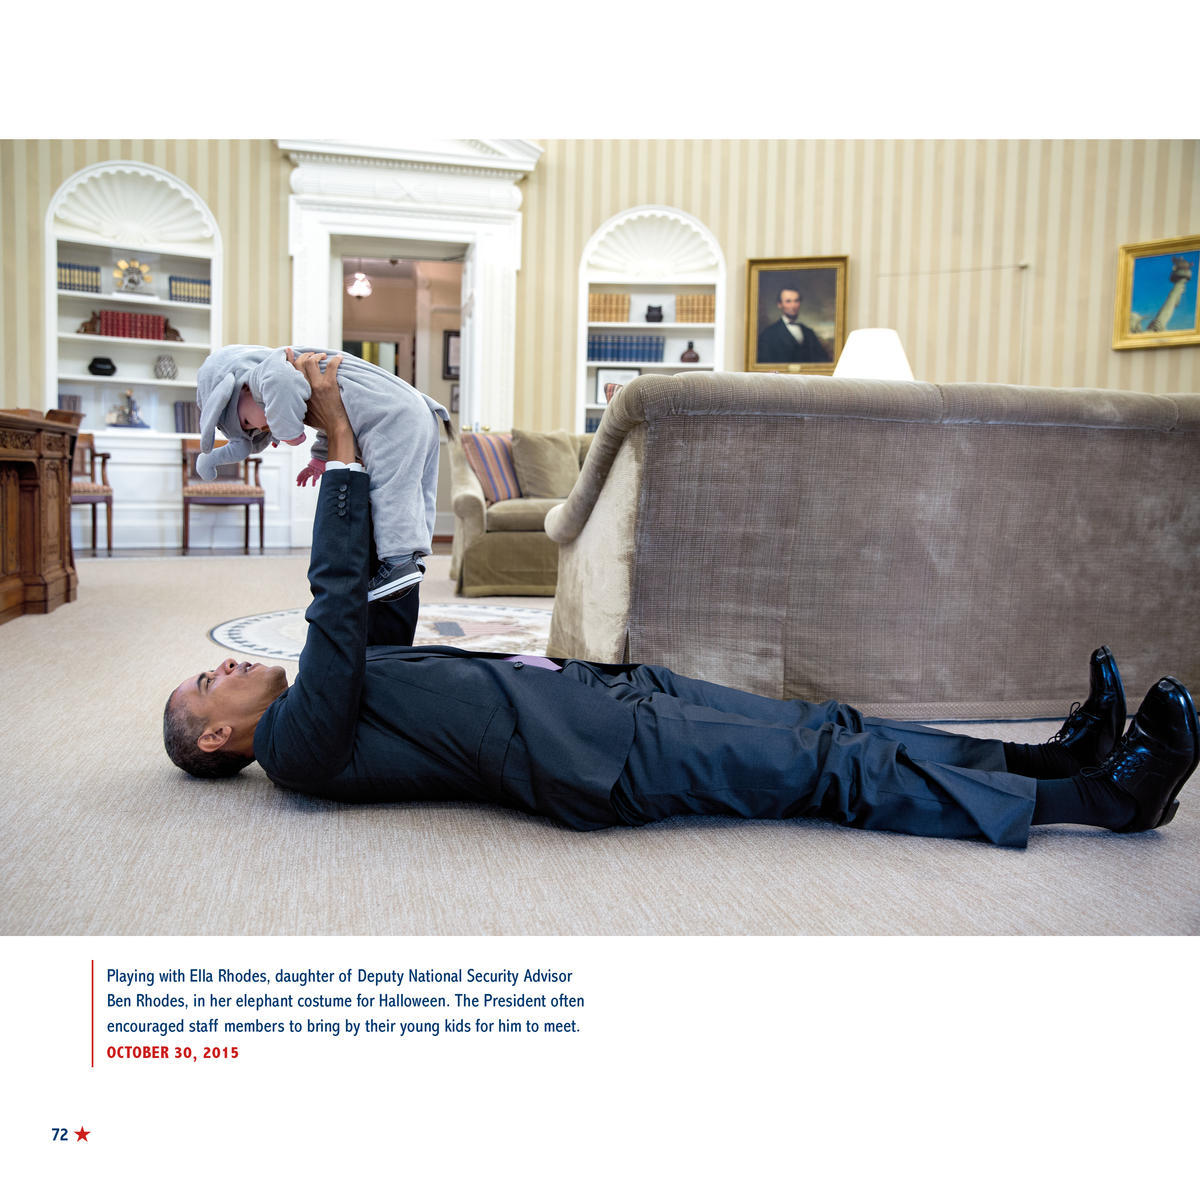 President Obama Playing With Baby, Exclusive Images from His White House Photographer's New Children's Book